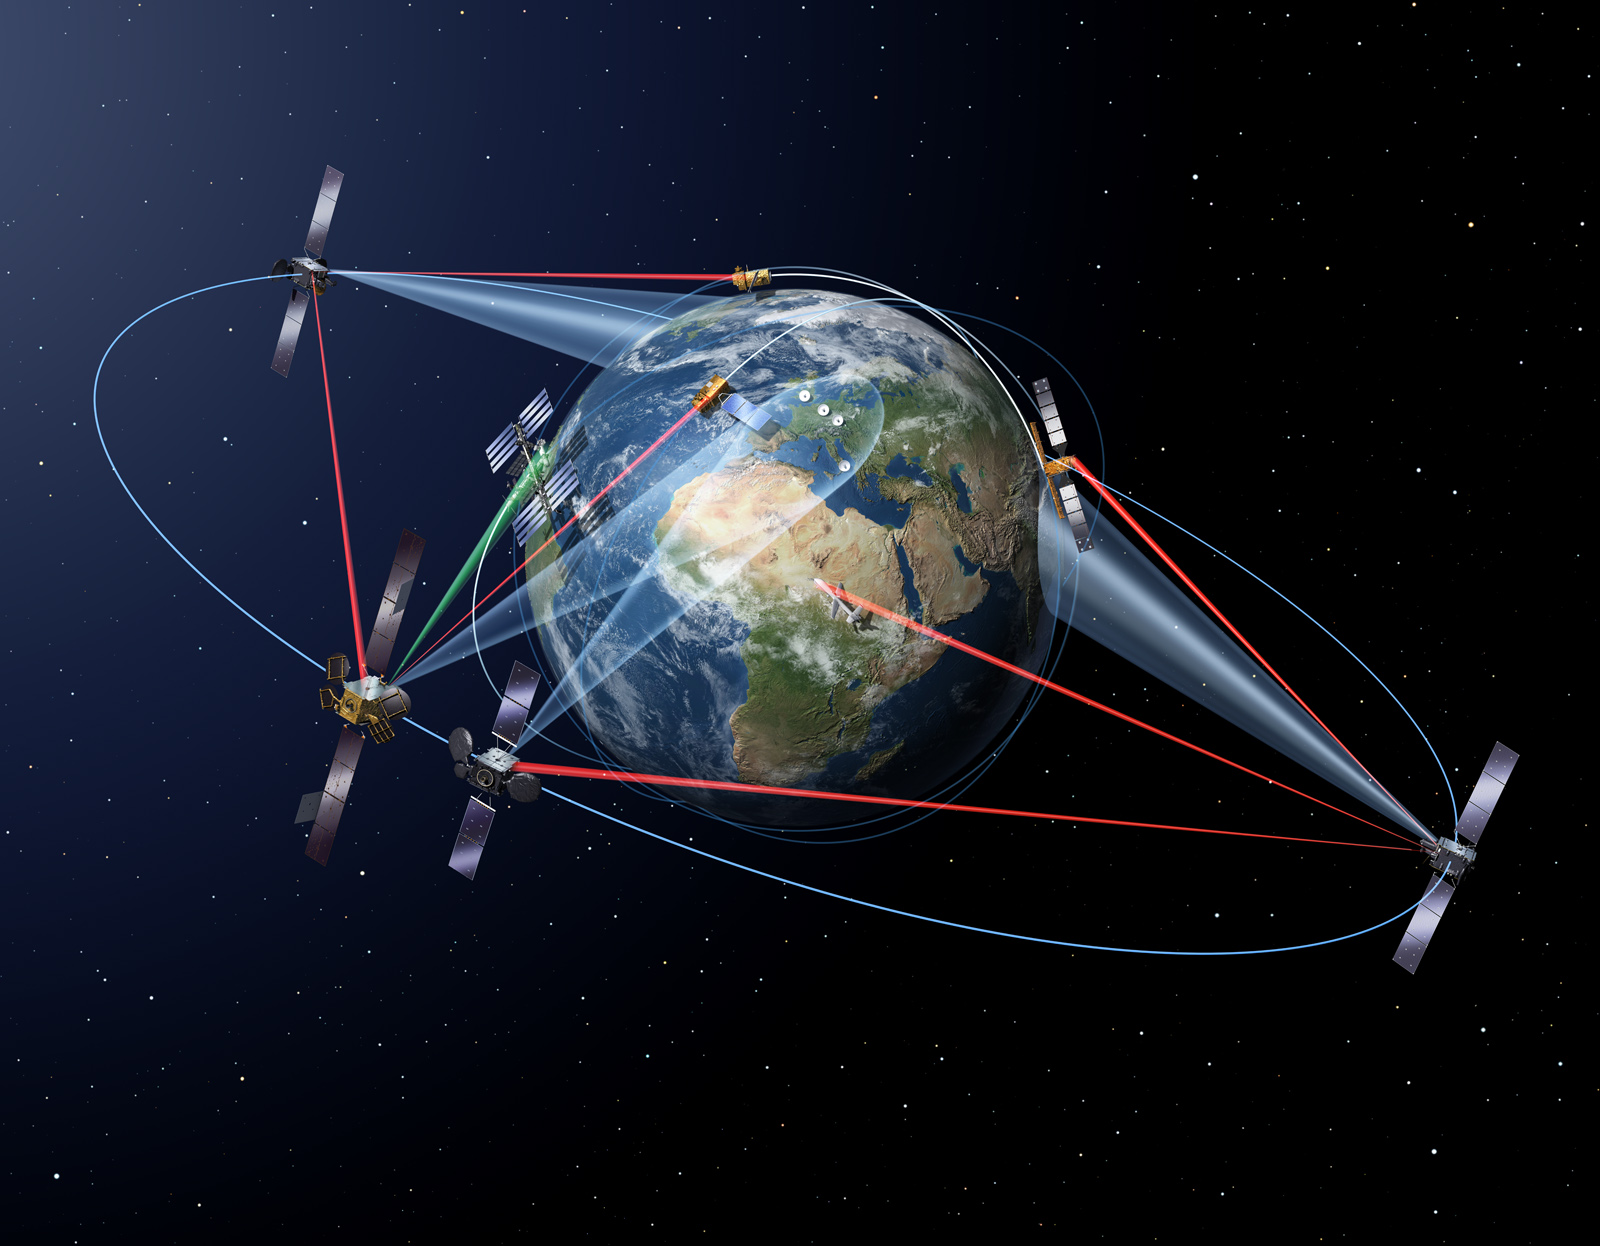 Space in images 2016 02 inter satellite laser links for Images of space craft